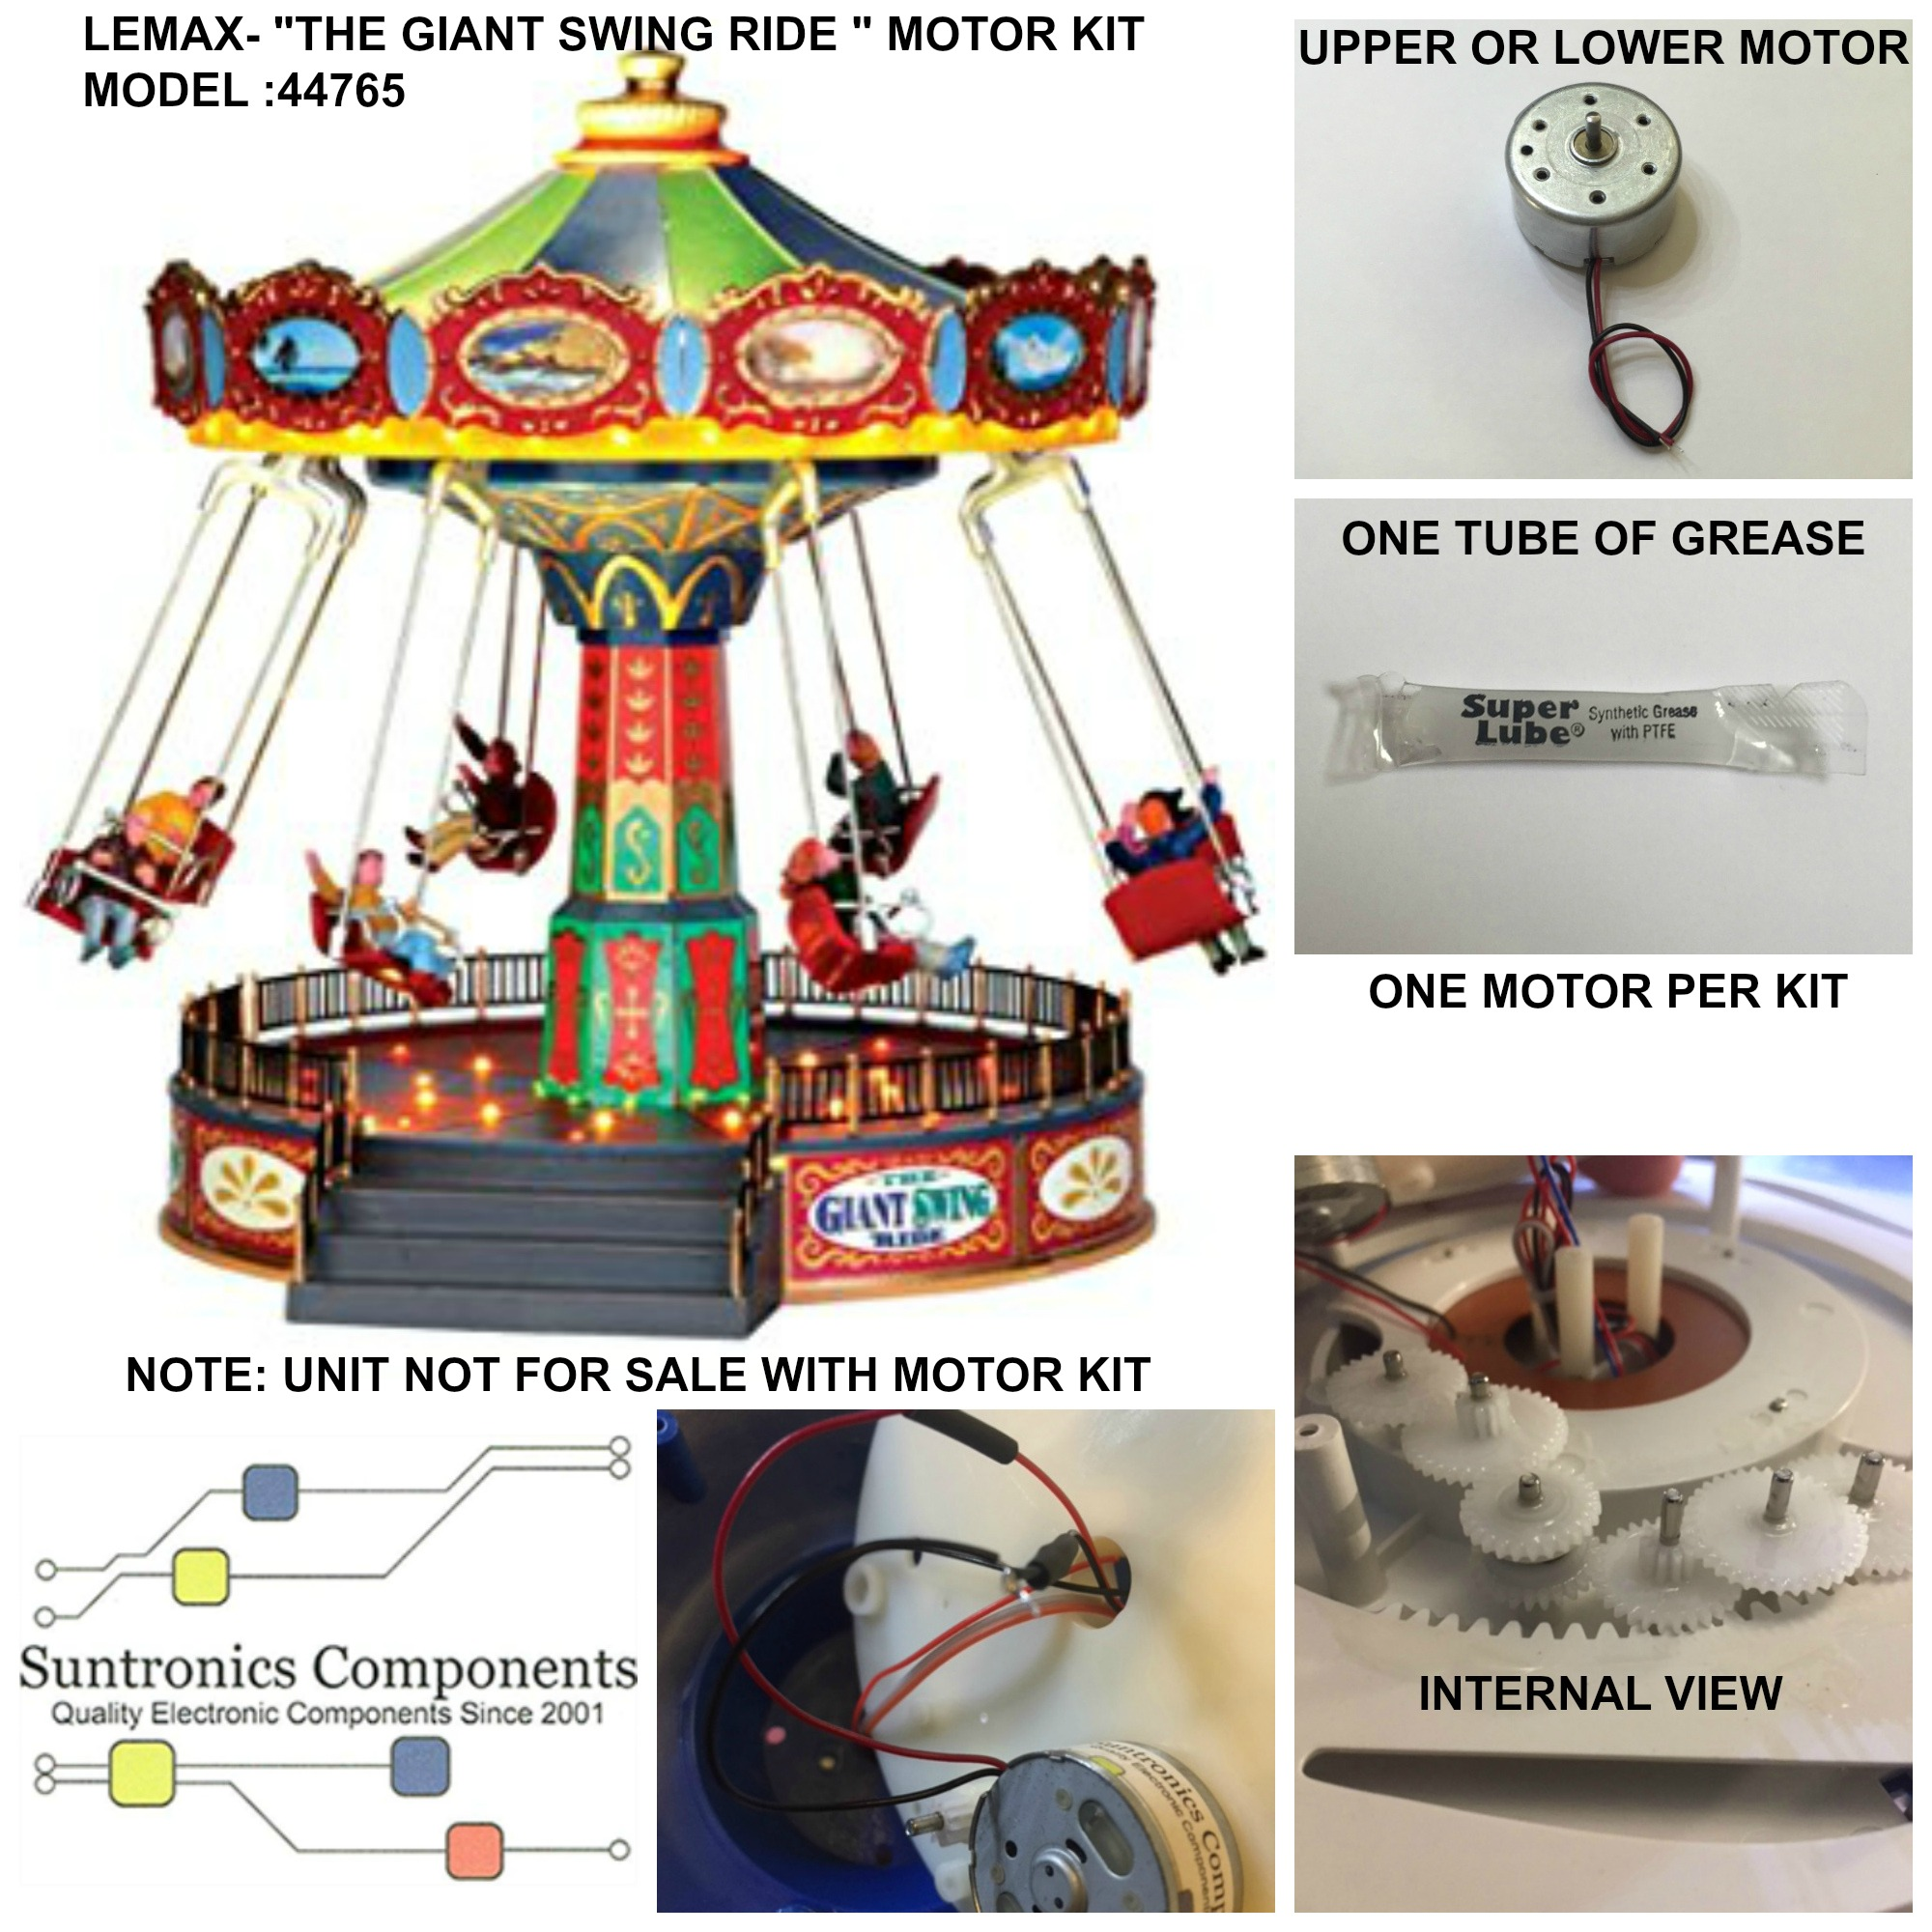 PicMonkey ImageLEMAX THE GIANT SWING RIDE MODEL 44765 MOTOR KIT.JPG